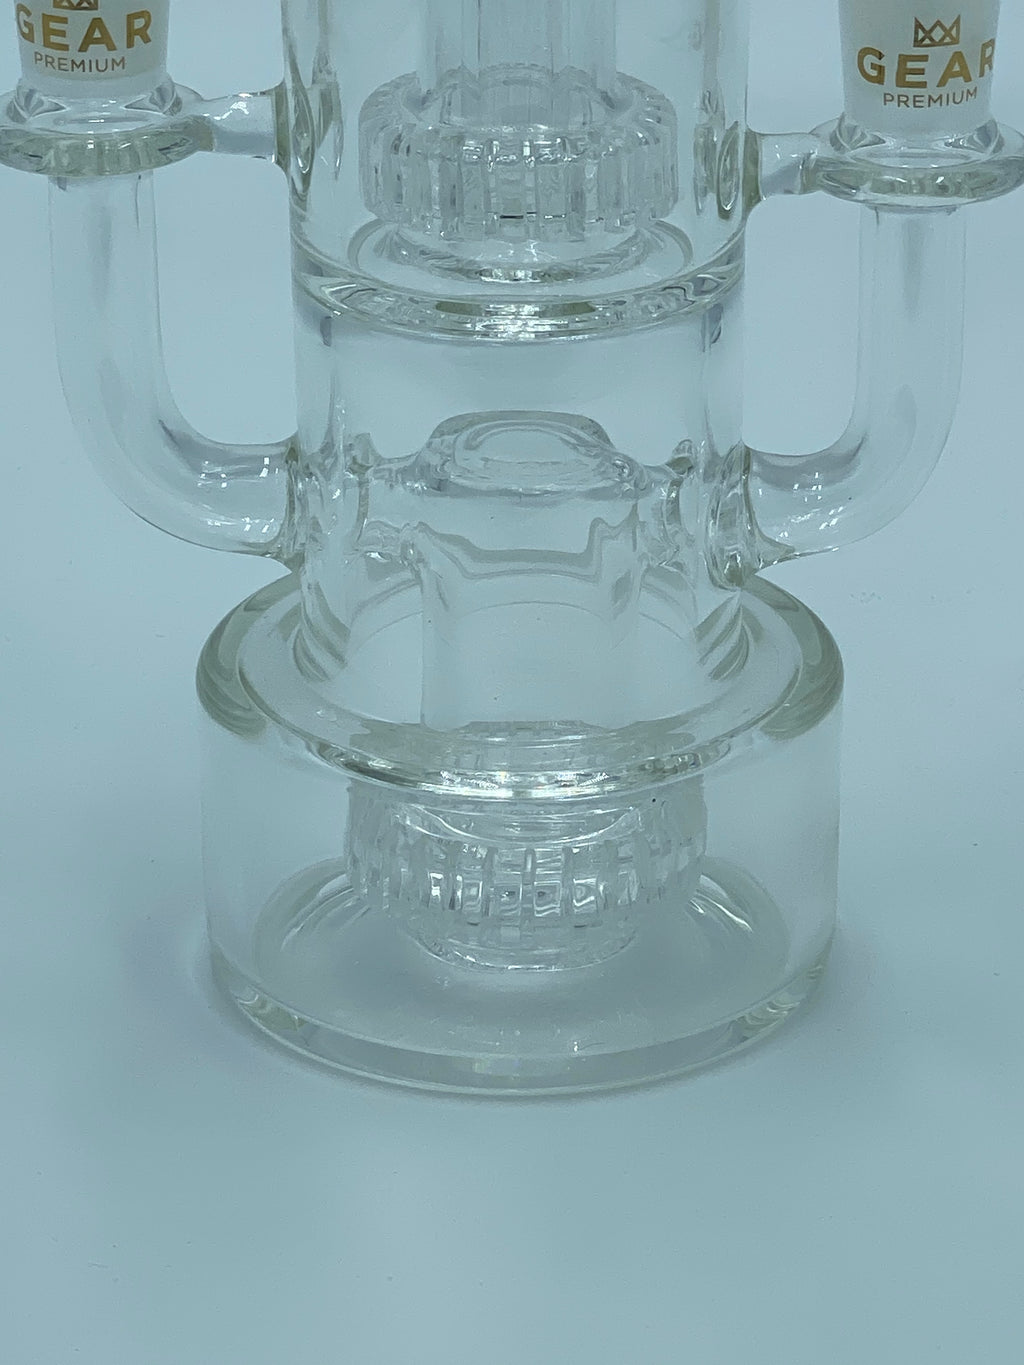 GEAR PREMIUM  DUAL HIT PERCOLATOR - Smoke Country - Land of the artistic glass blown bongs